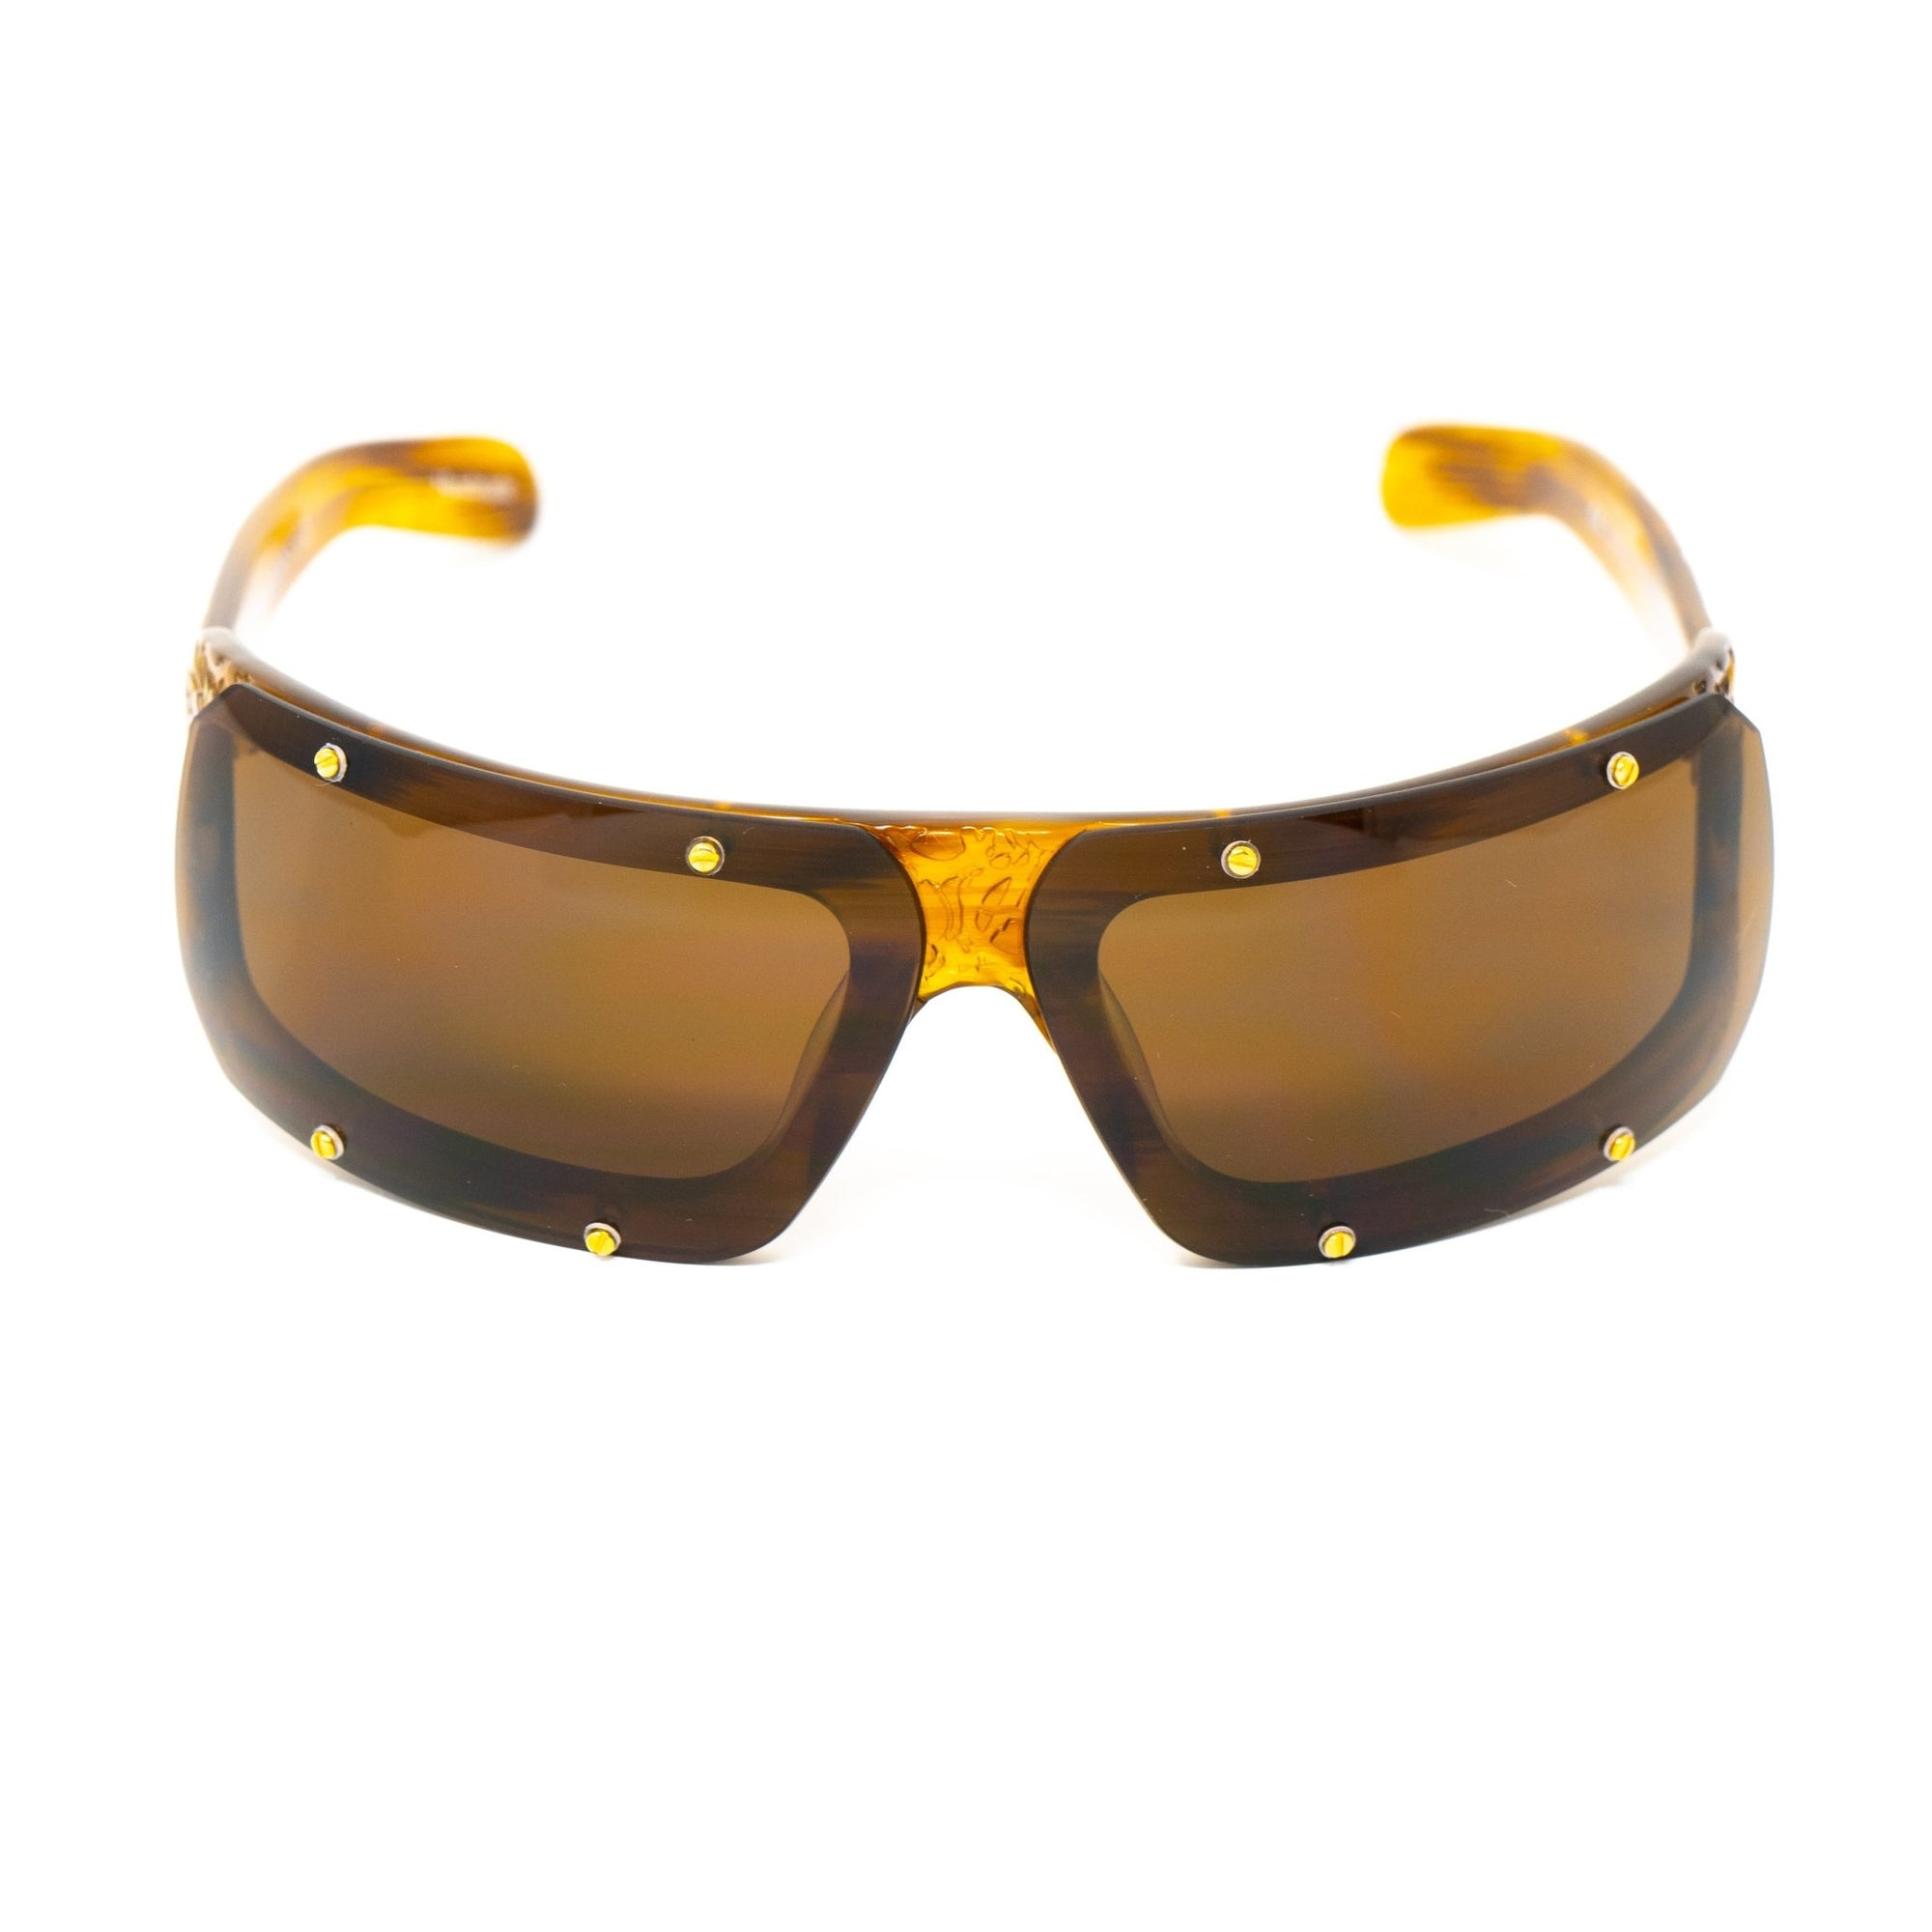 Buddhist Punk Sunglasses Rectangular Tortoise Shell With Brown Lenses Category 3 6BP2C2TSHELL - Watches & Crystals